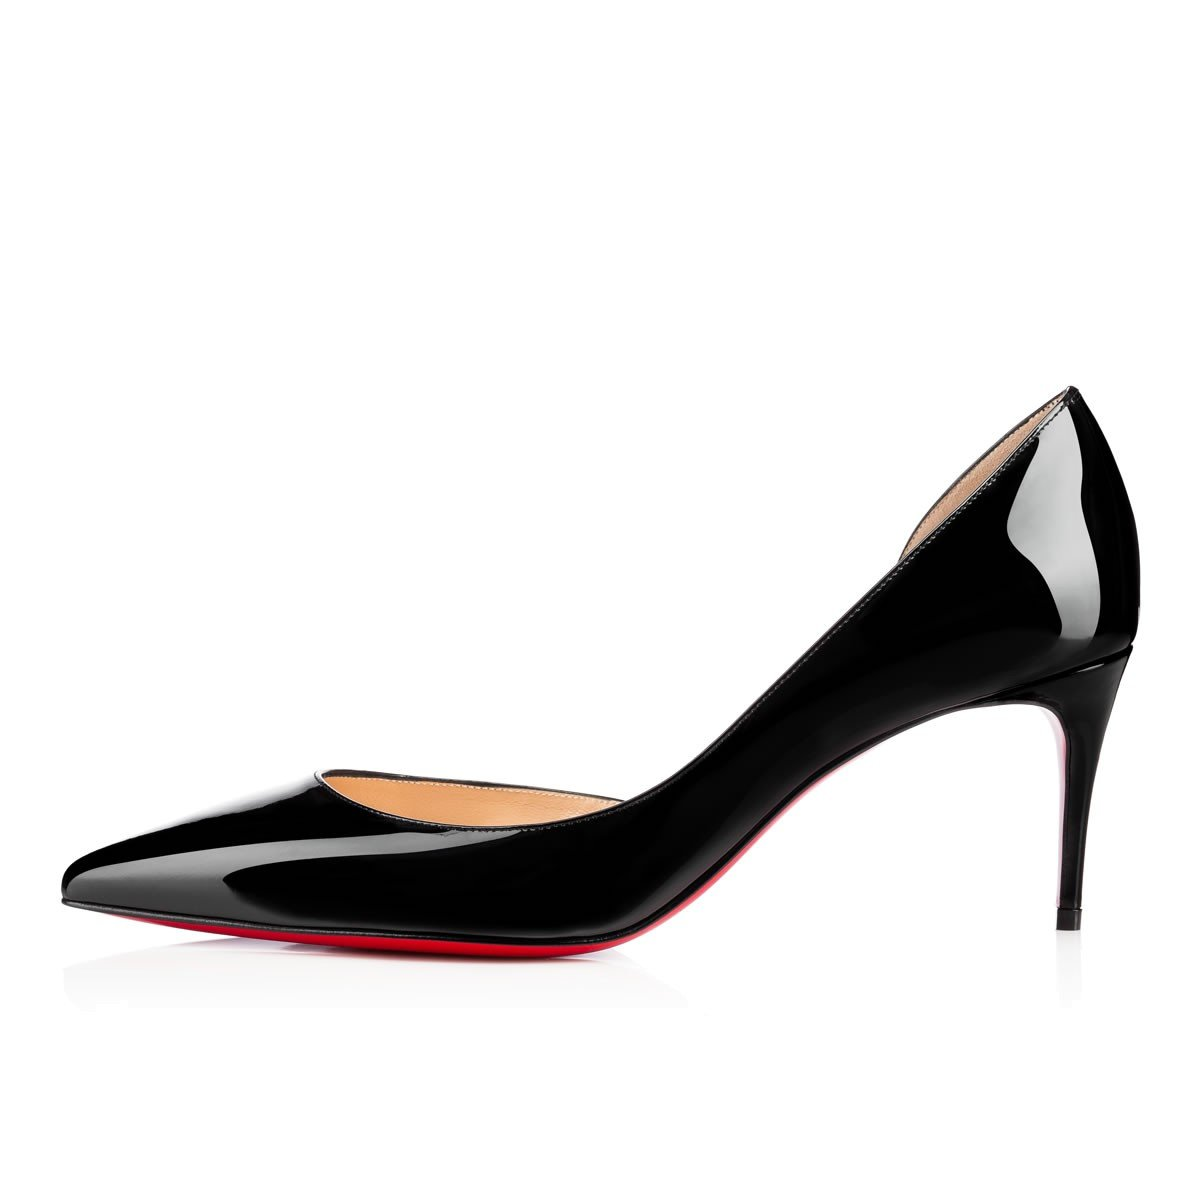 Chris-T Women Fashion D'Orsay Peep Toe with High Heel Stiletto Dress Party Pumps Size 5-15 US B07FMHKH1D 7.5 B(M) US|Pblack/Red S0le(bottom)